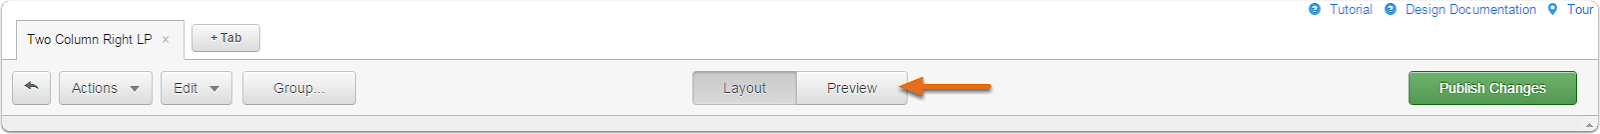 Preview template button